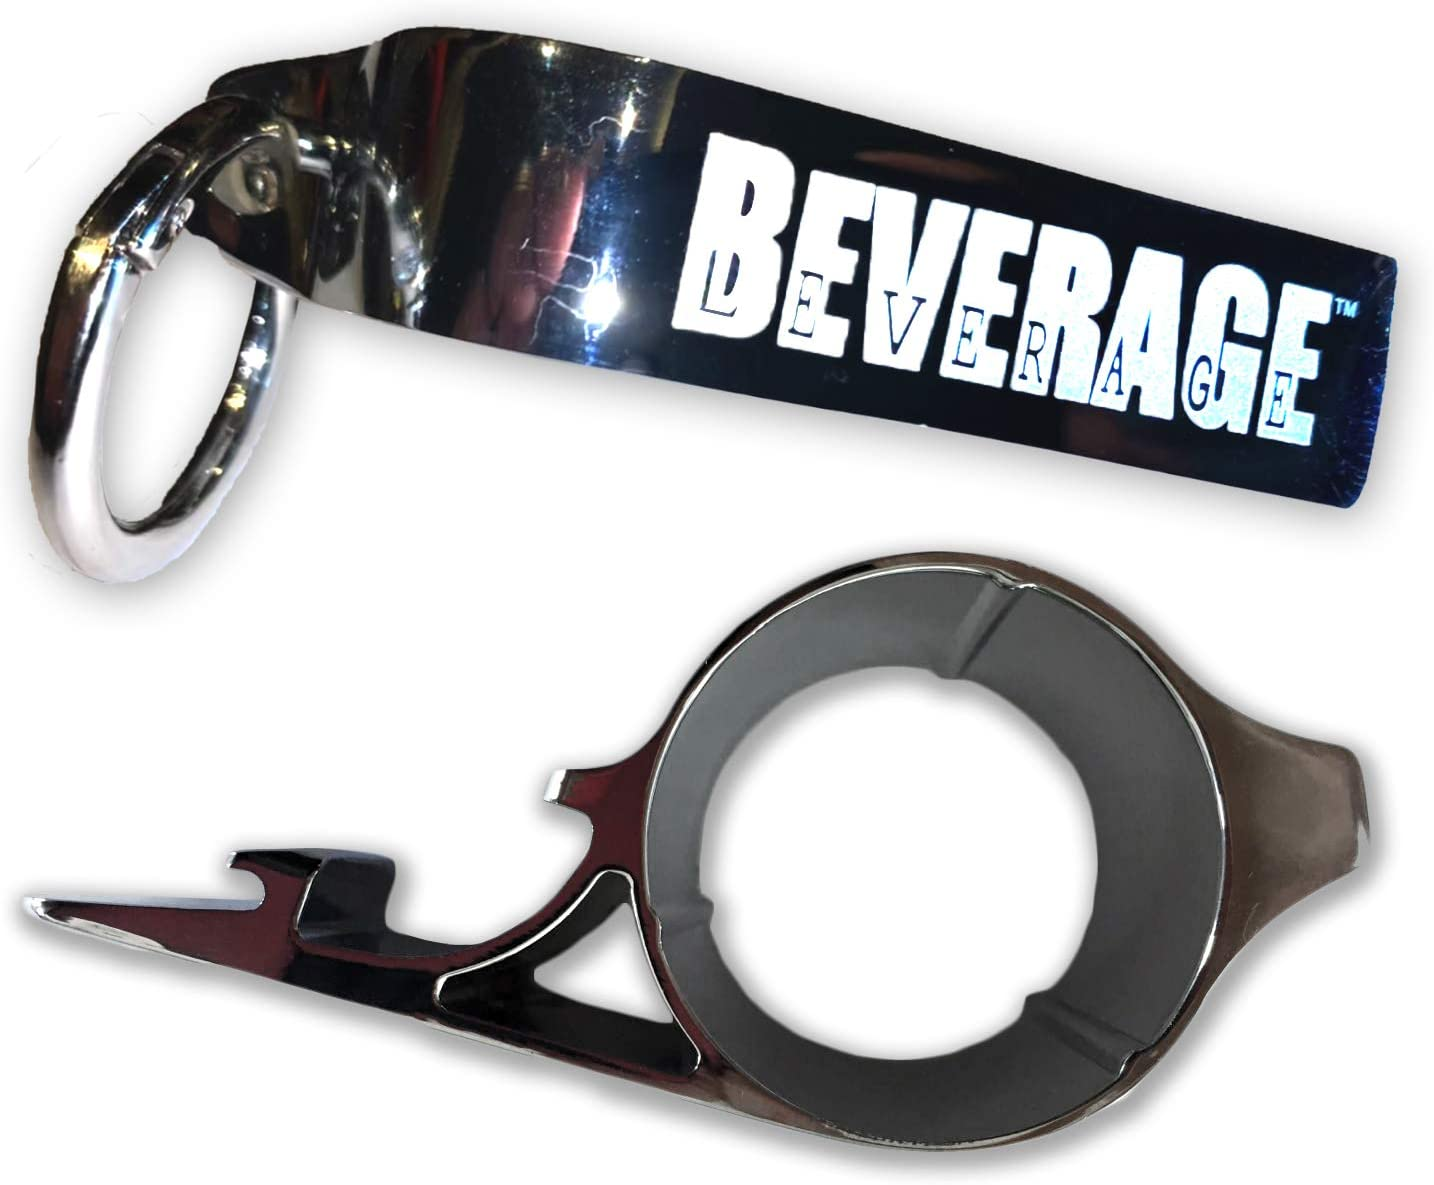 Portable Multi-function Beverage and Can Opener for All Ages and Those with Hand Arthritis PLUS Phone Cradle